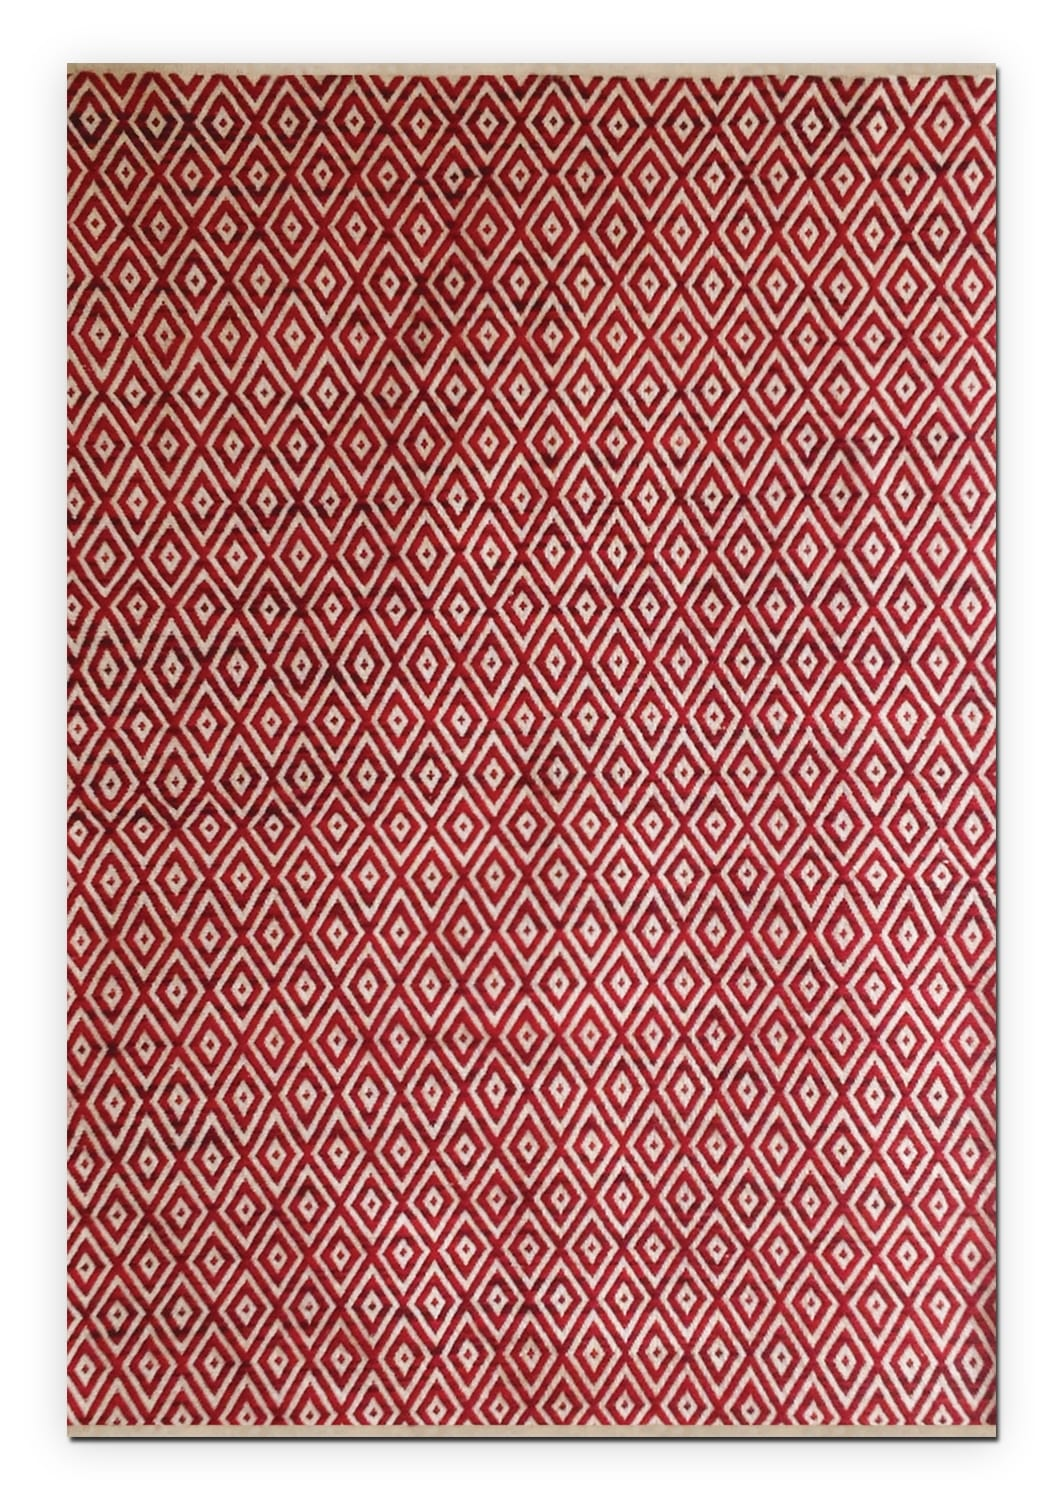 Vintage Red Diamonds Area Rug (5' x 8')